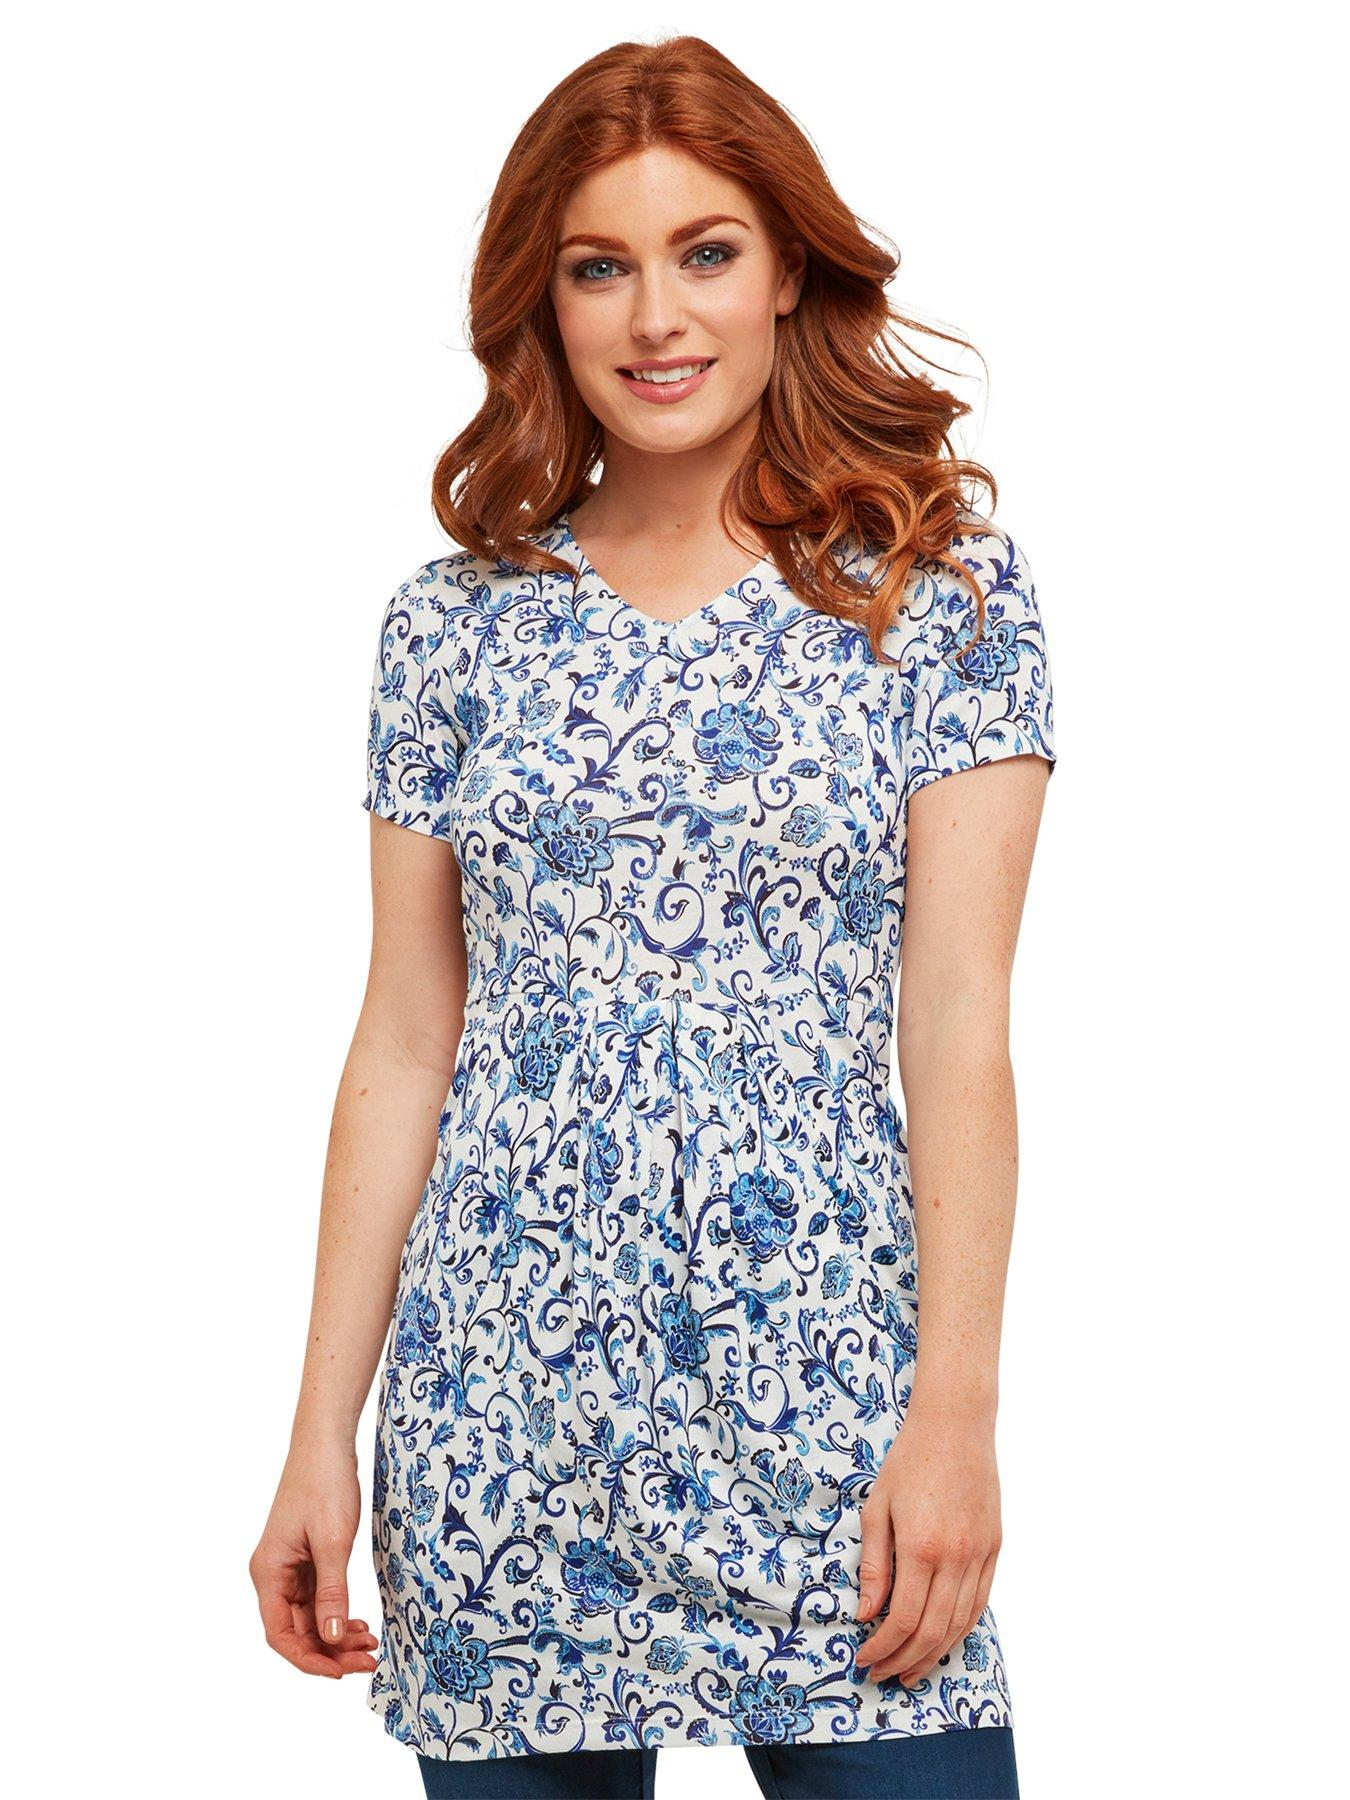 Joe Browns Delightful Floral Tunic - White/Blue